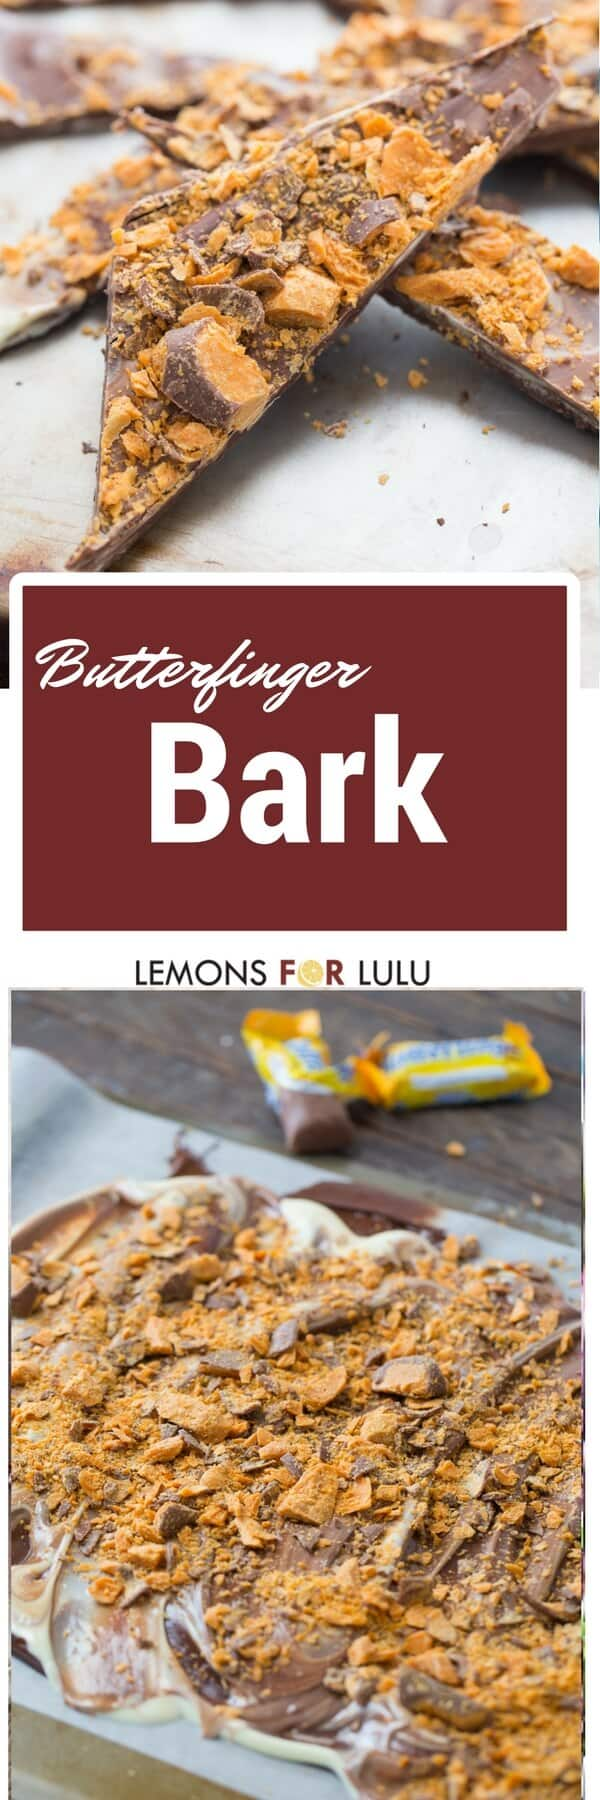 Find some Butterfingers quick! You are going to want to try this easy recipe! Lots of chocolate and candy!